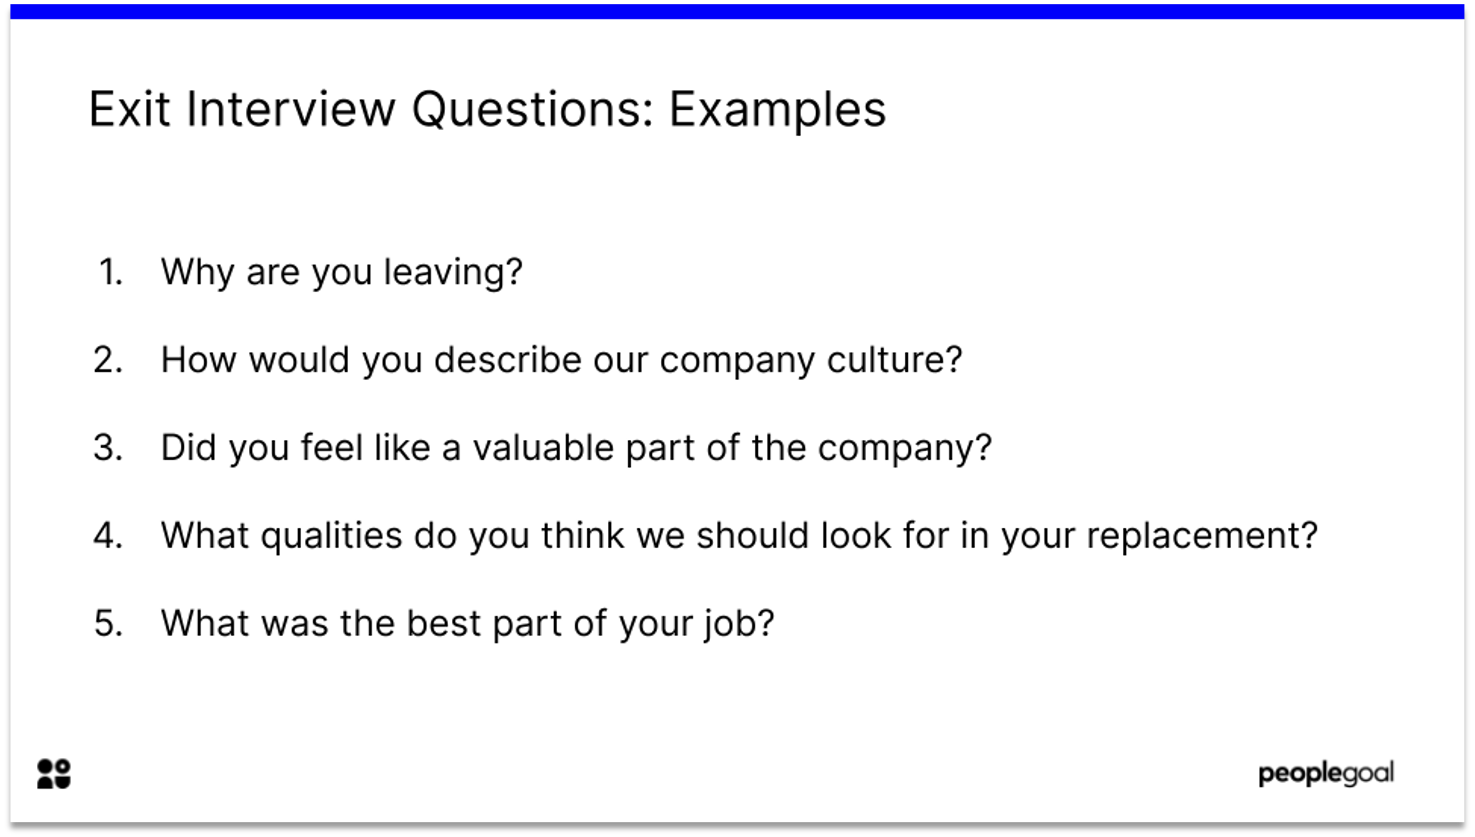 Exit Interview Questions Examples